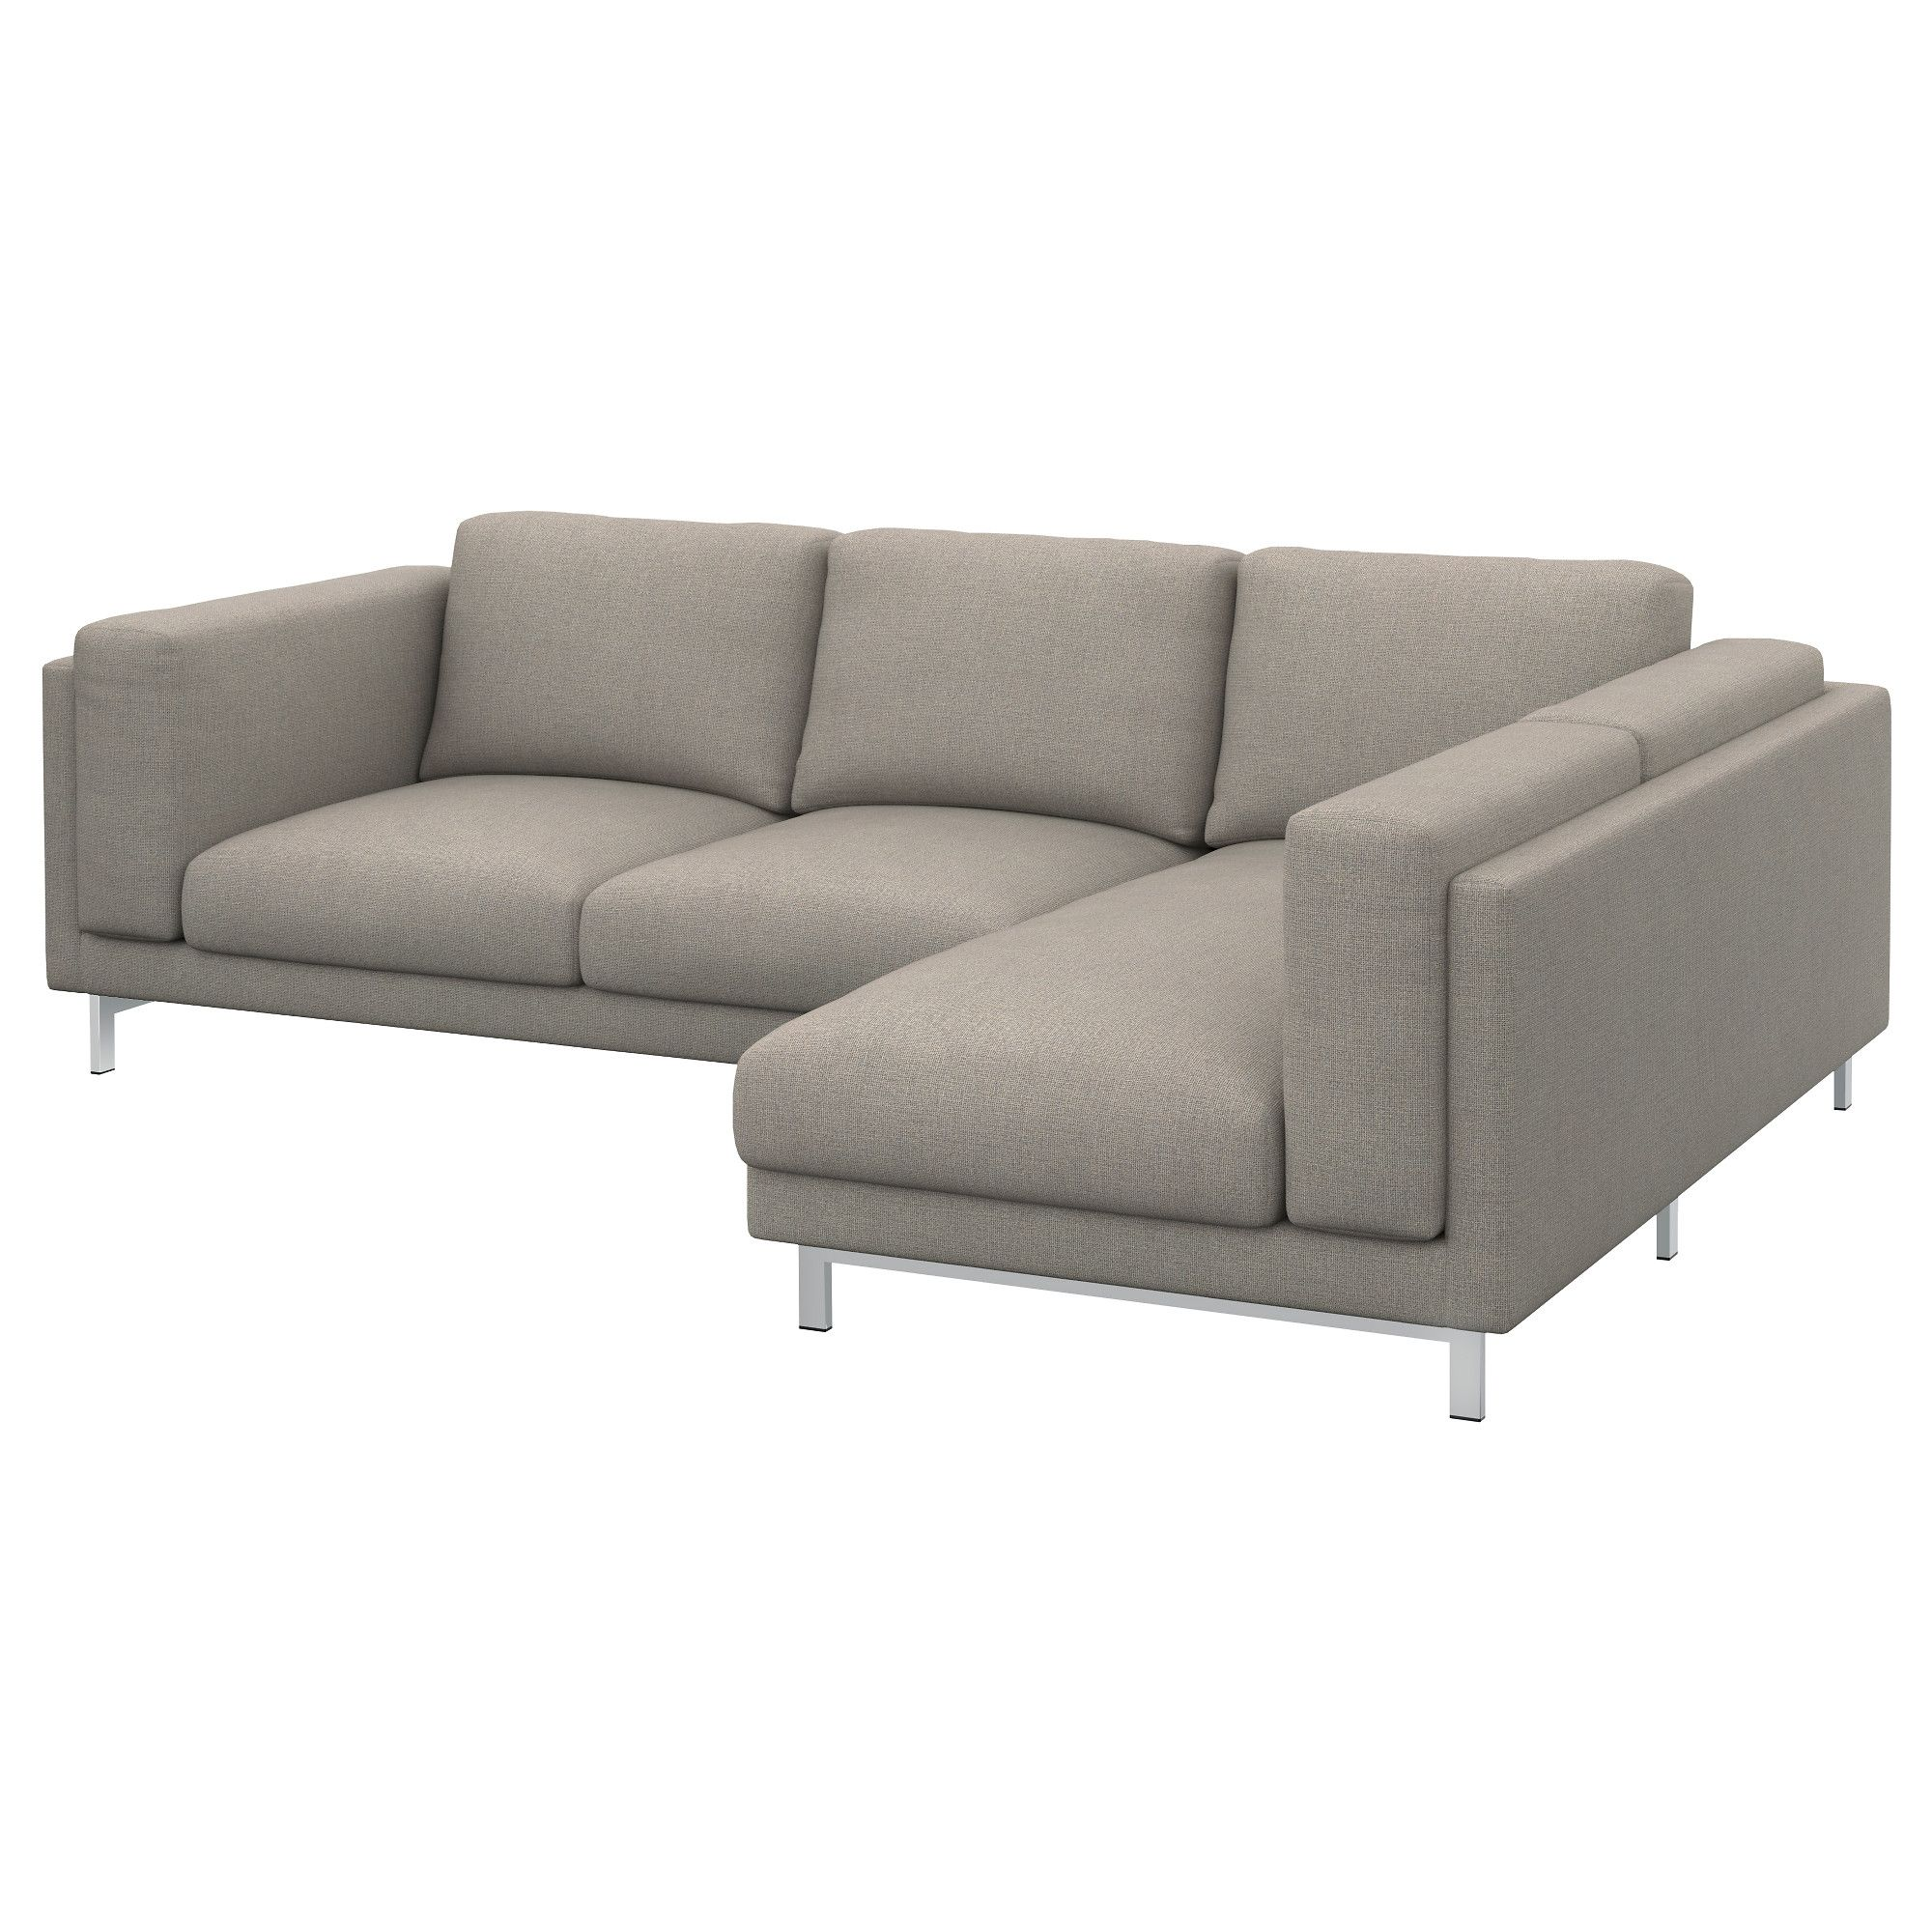 Ecksofa ikea  NOCKEBY Loveseat with chaise, right - Tenö light gray/chrome ...